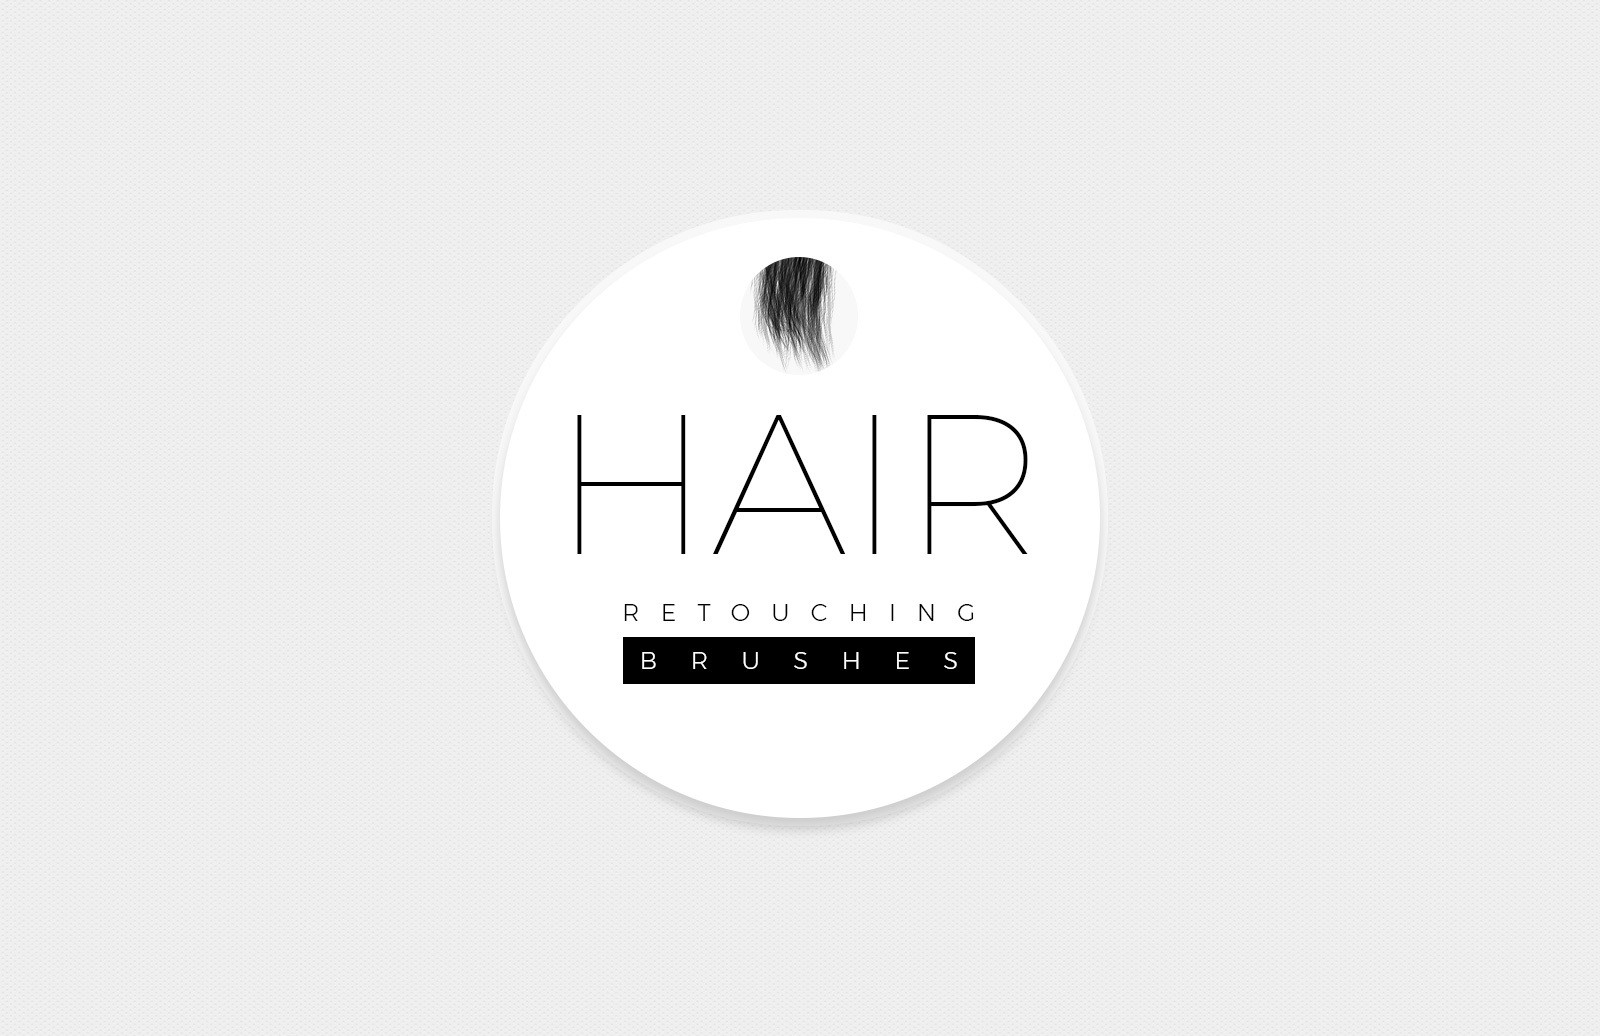 Hair Retouching Brushes